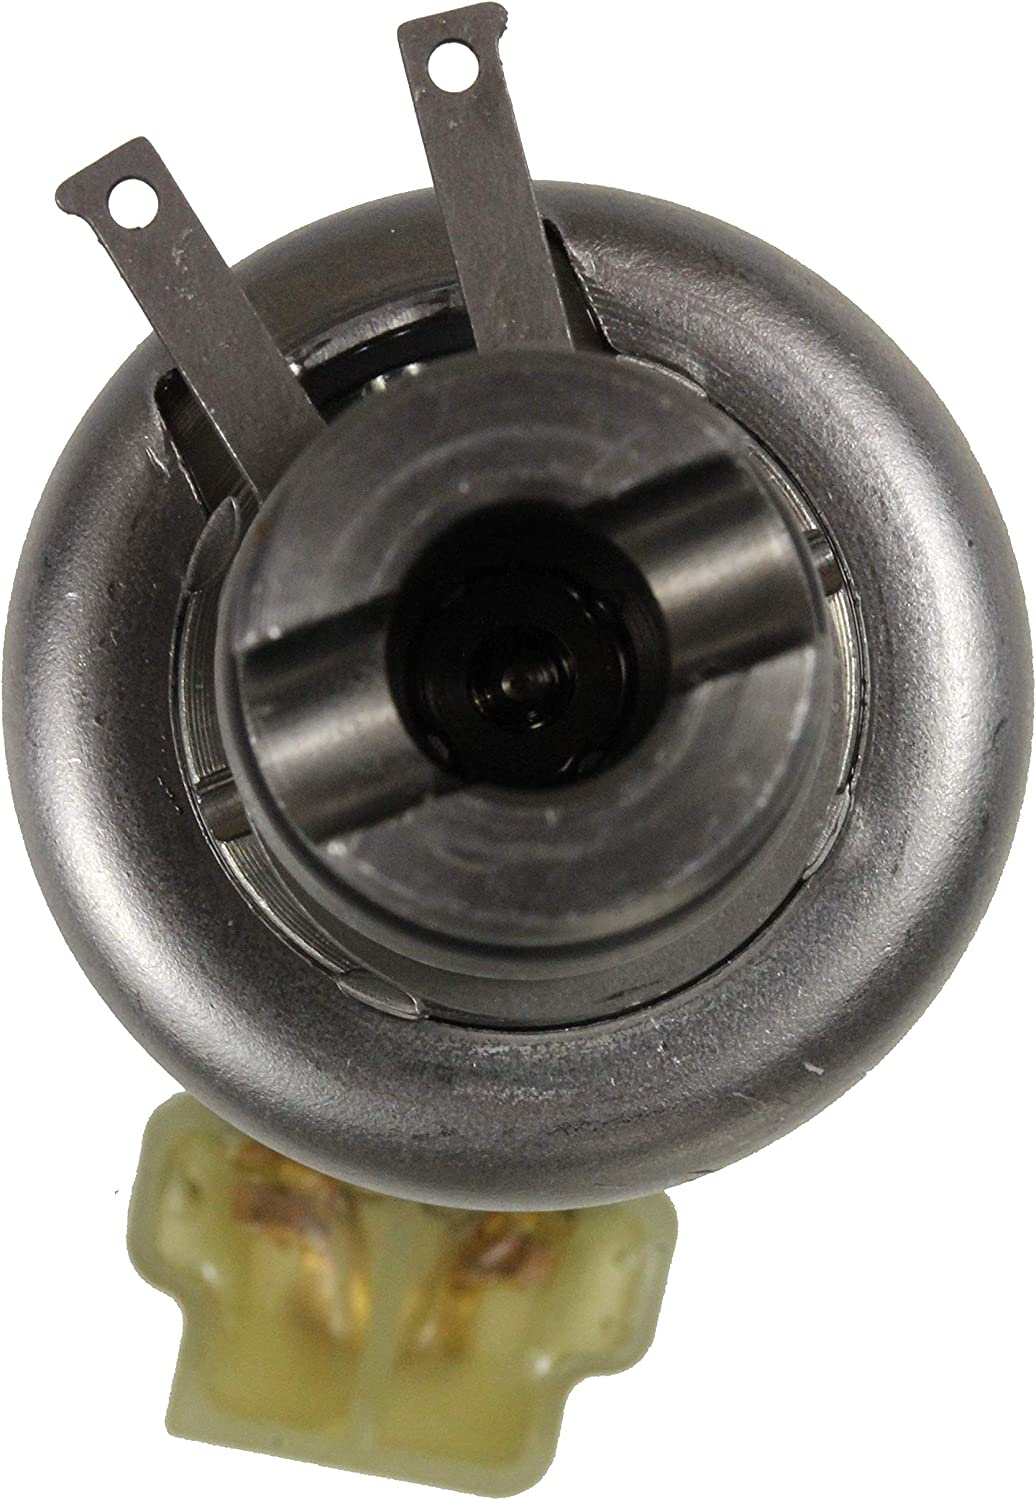 WVE by NTK 1S12216 4WD Actuator